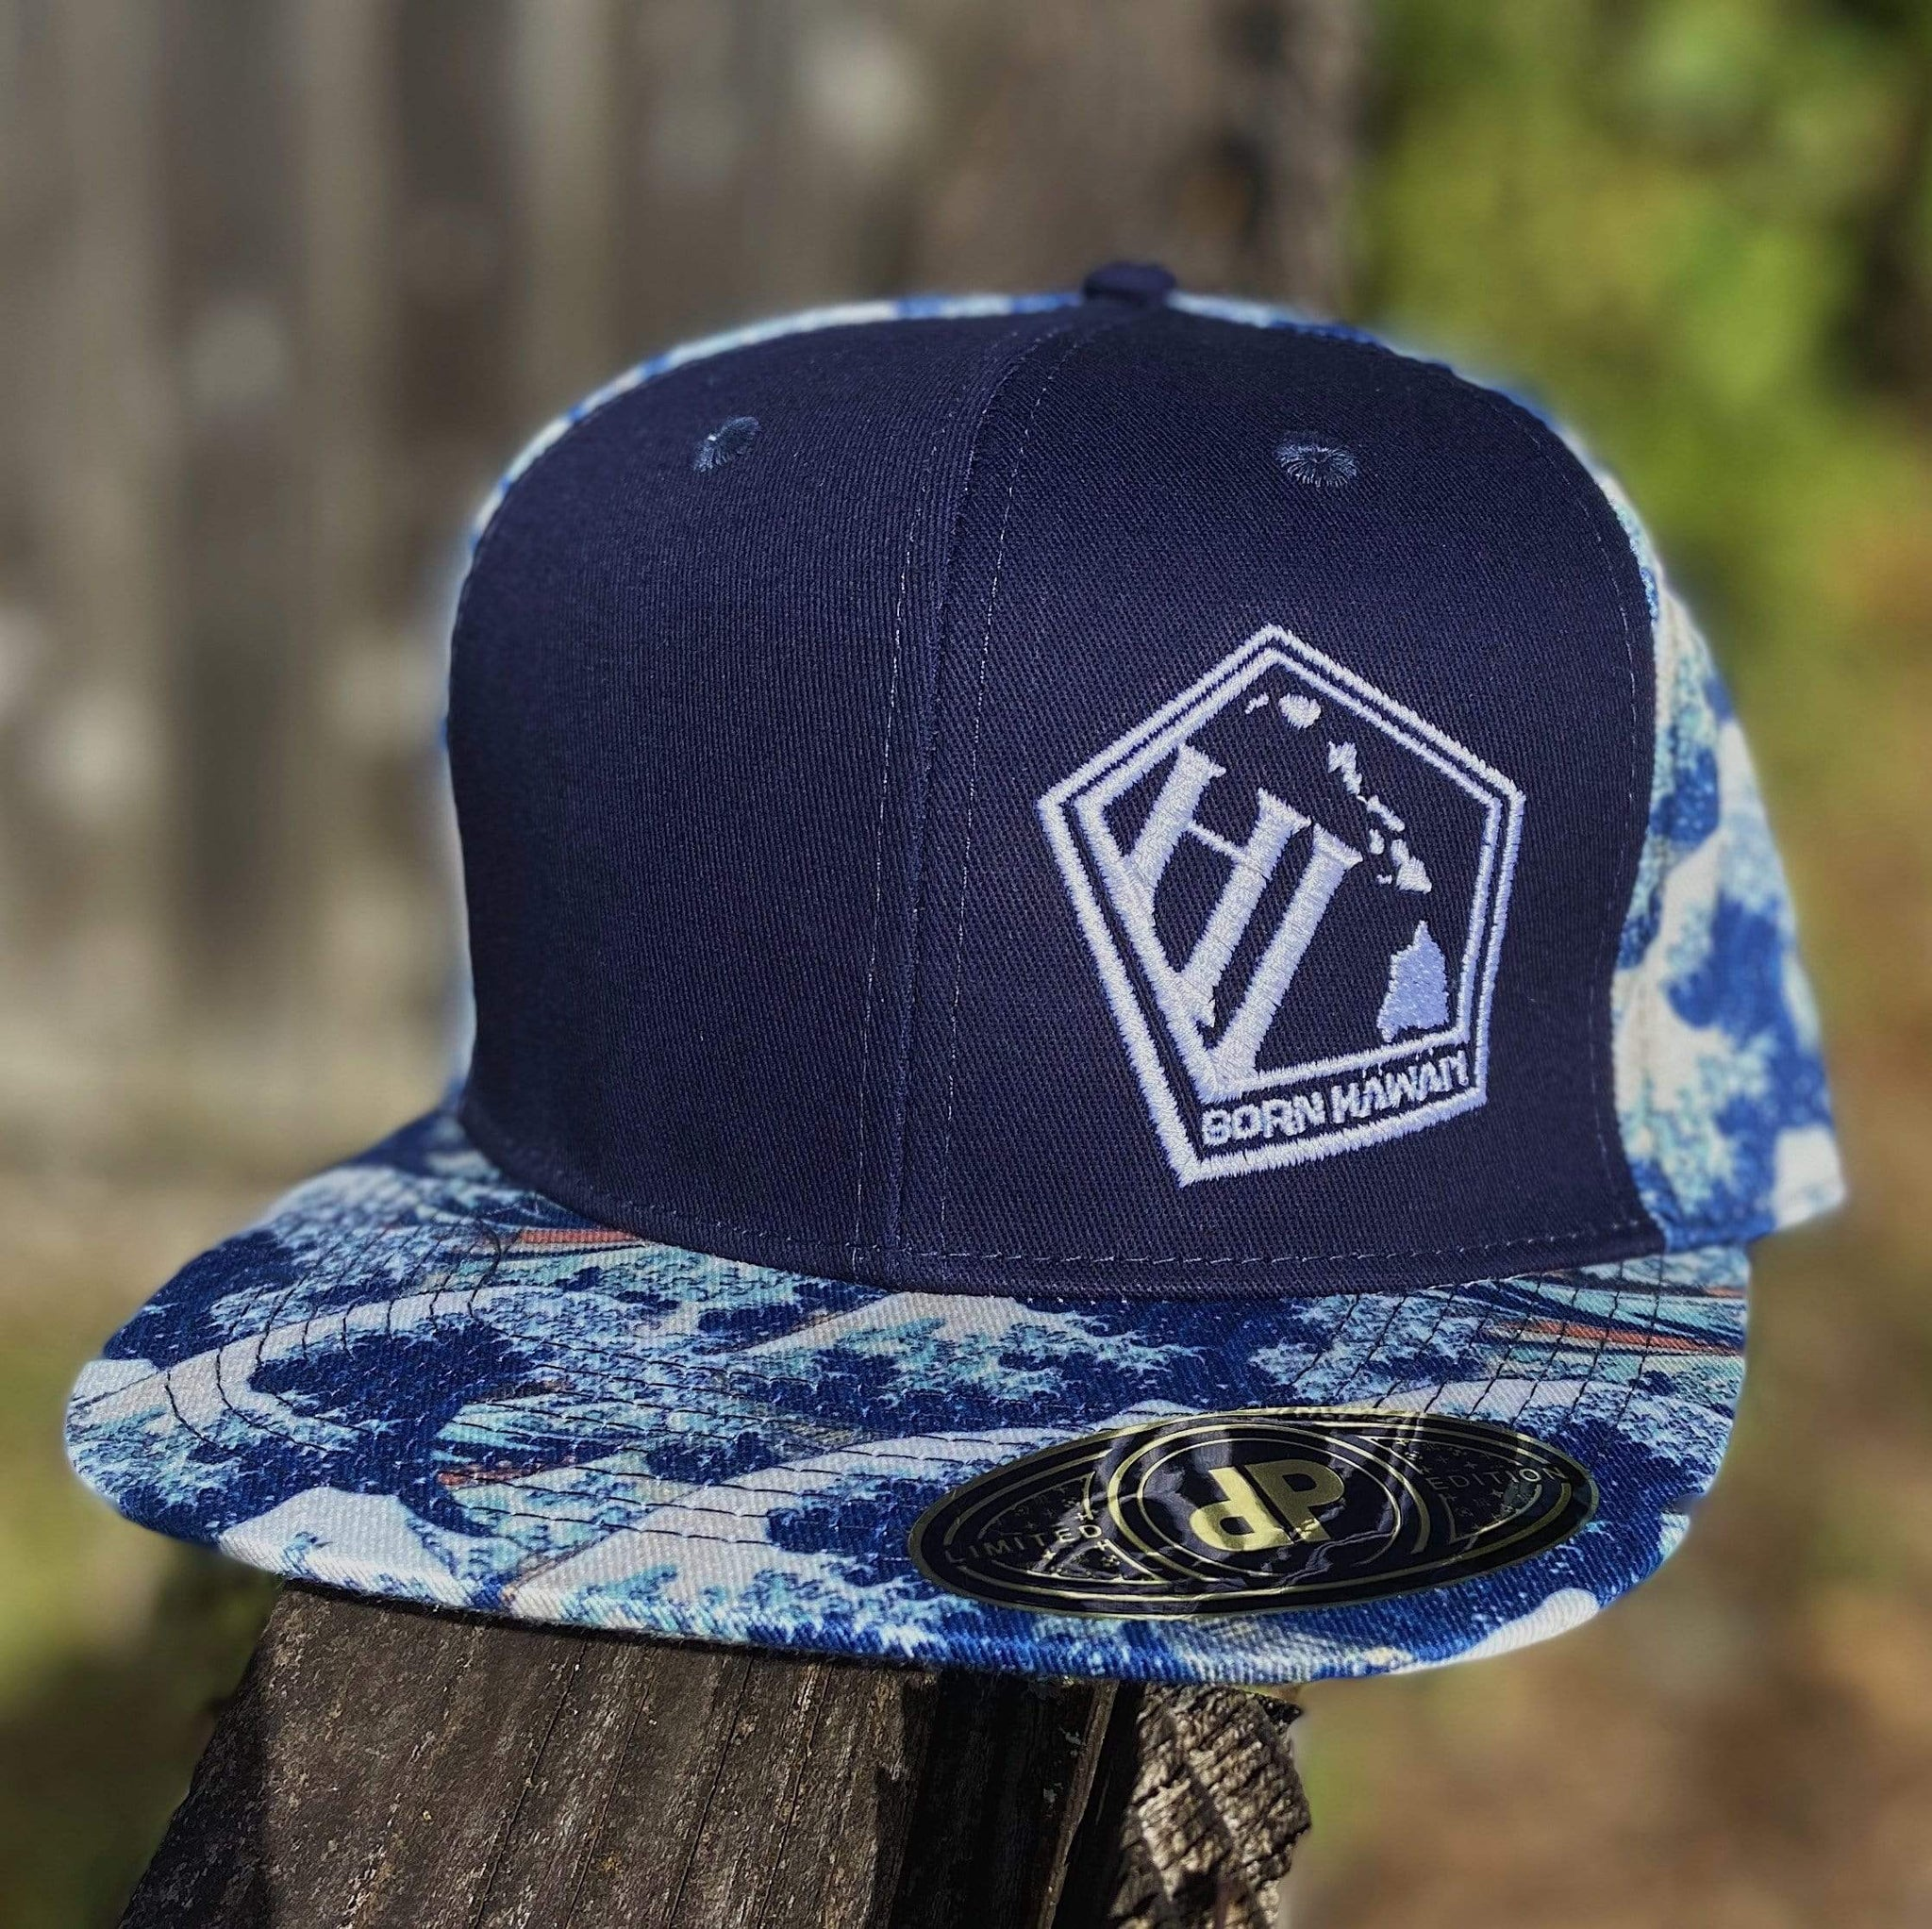 Born Hawaii Hat JAPANESE WAVE SNAKPBACK HAT